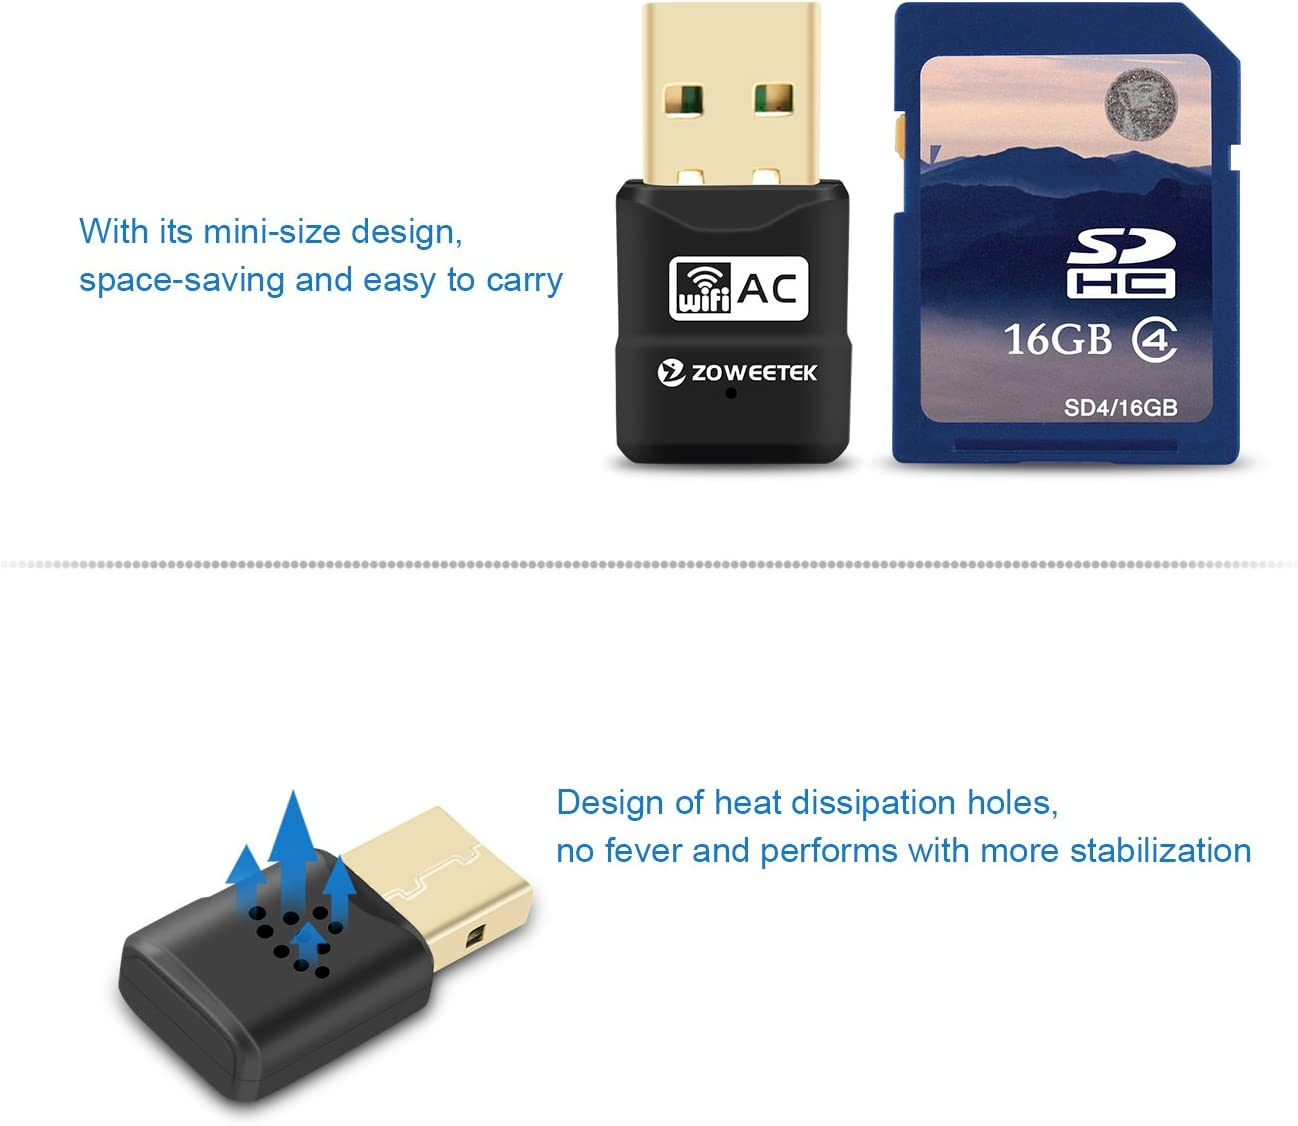 for Windows XP//7//8//10 and Mac OS X 10.6-10.12 802.11ac Wireless Network Dongle with Dual Band 2.4GHz Zoweetek 600Mbps WiFi USB Adapter //5GHz 150Mbps 433Mbps